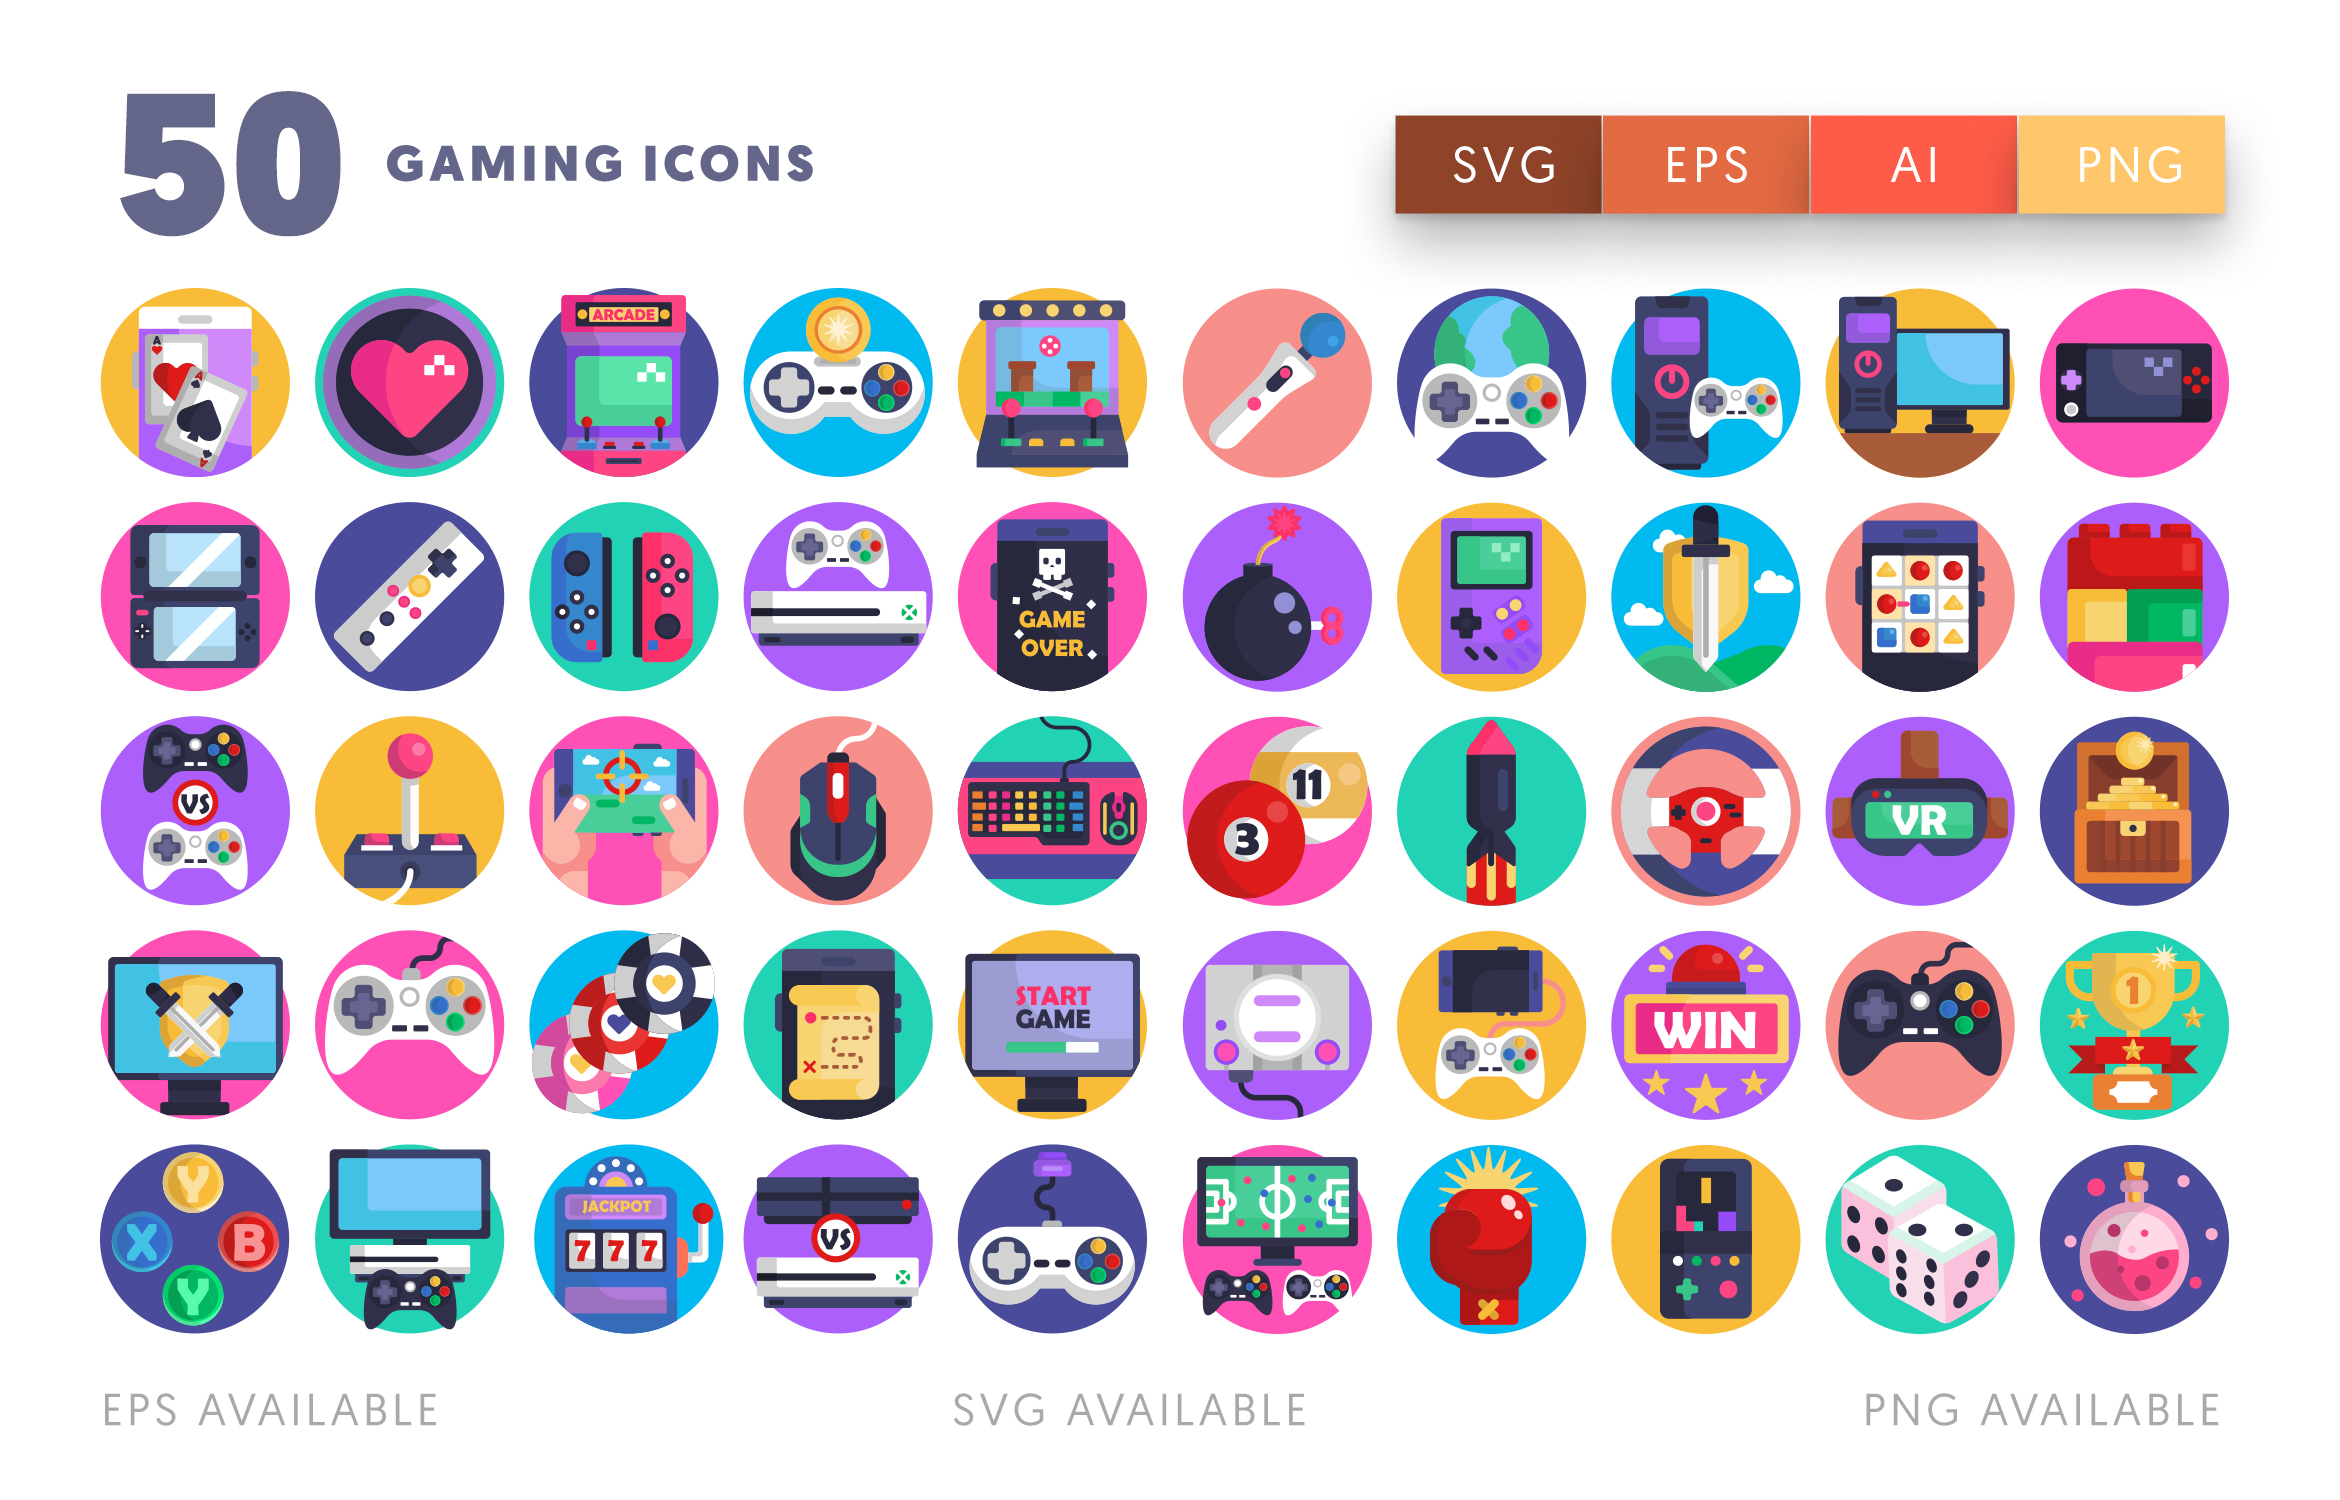 50 Gaming Icons